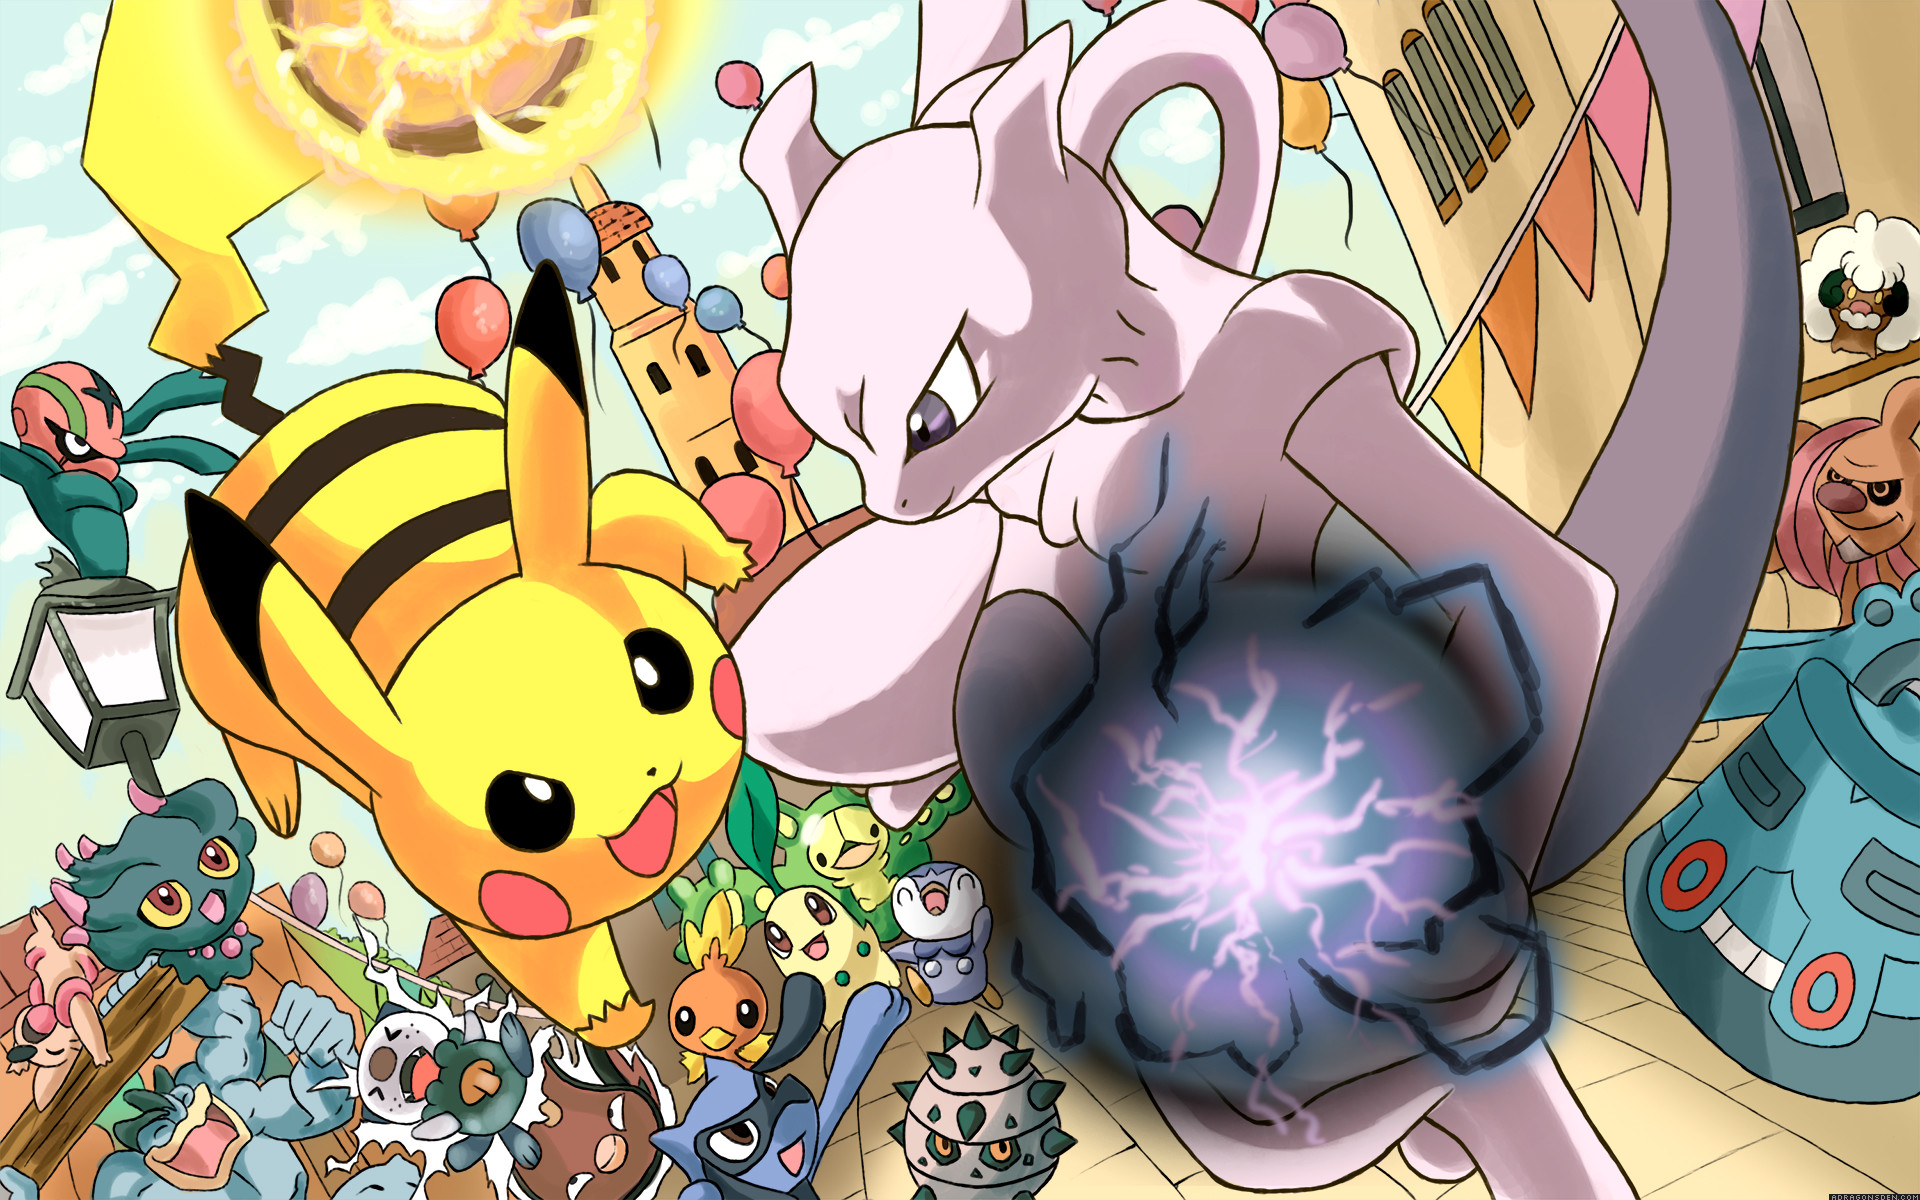 1920x1200 Pikachu/Mewtwo wallpaper by DragonsDenDA.deviantart.com on @deviantART